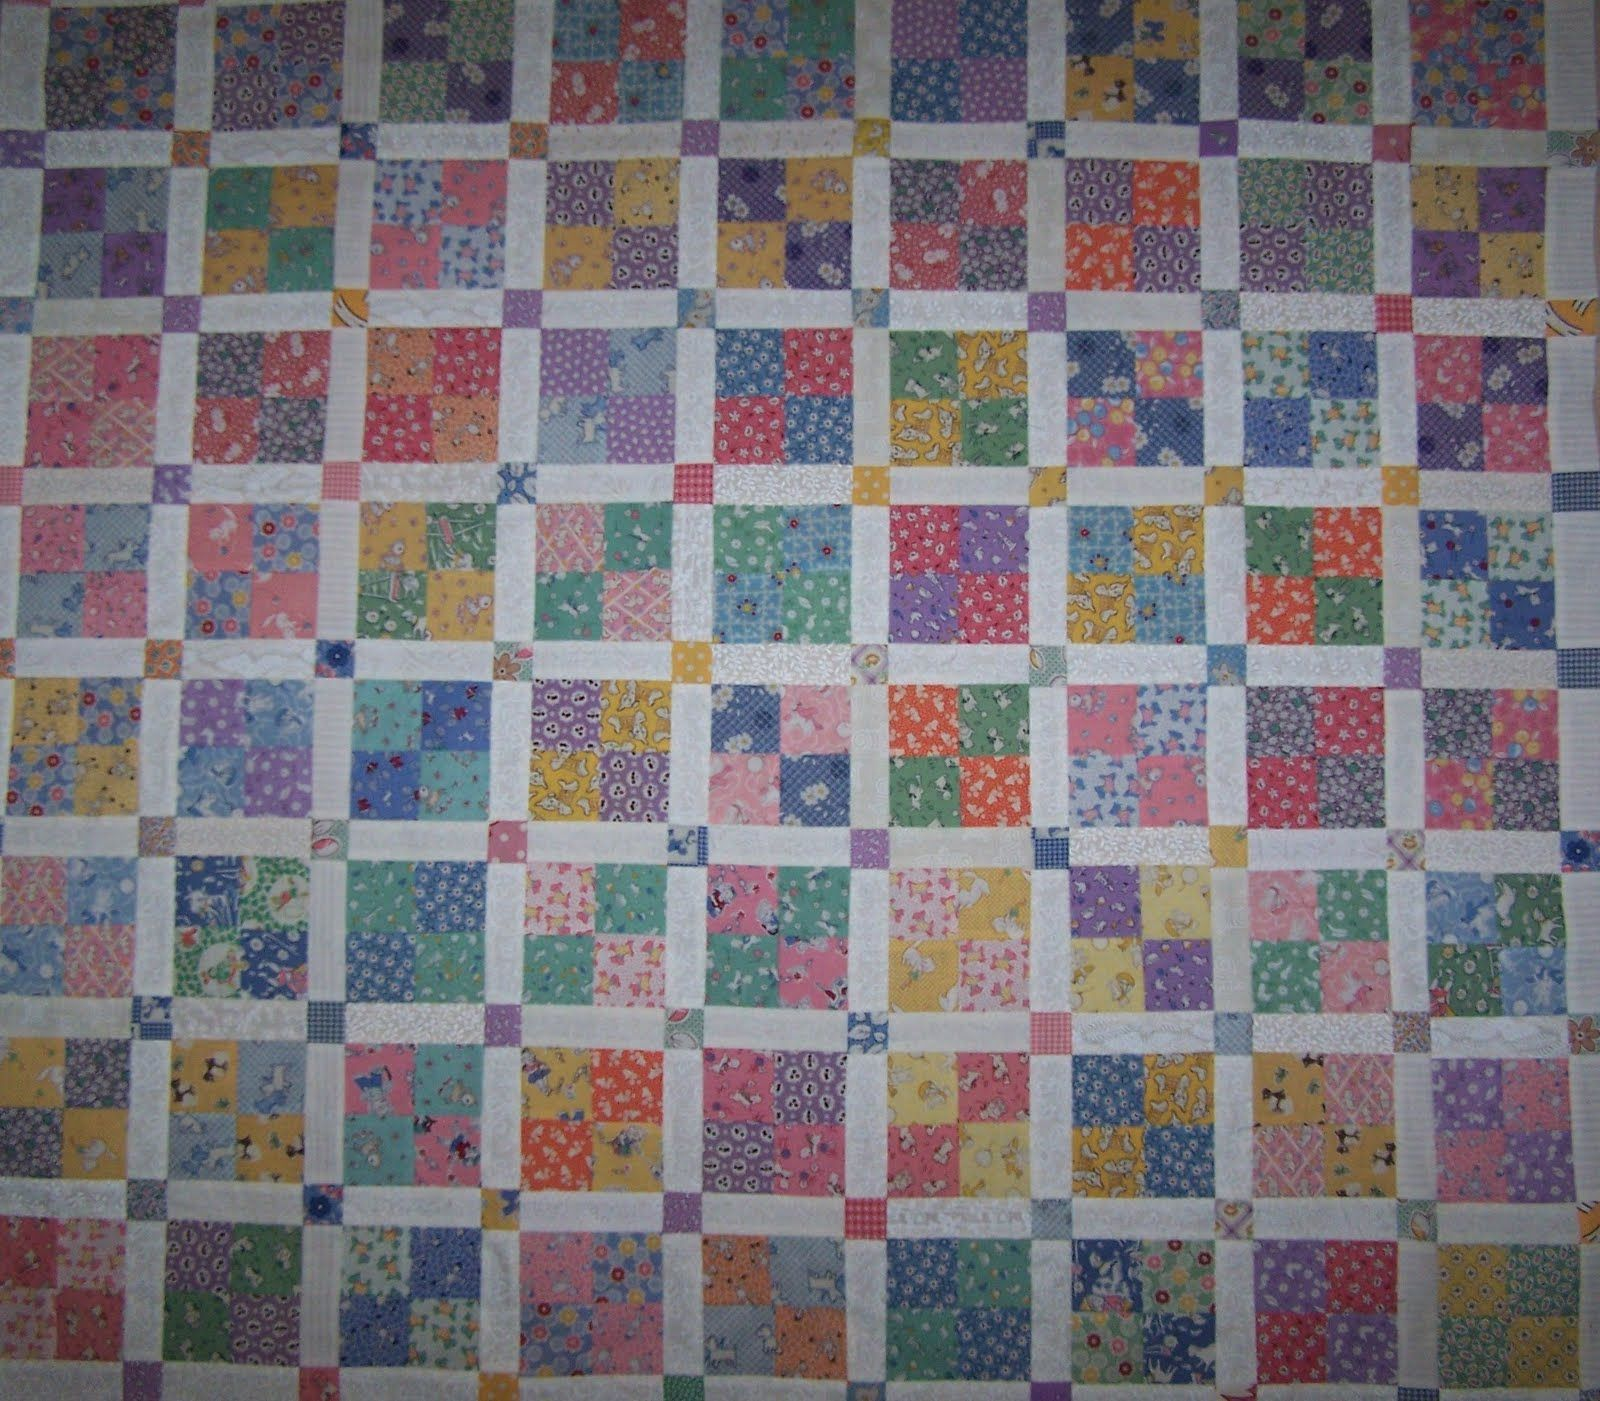 Silly Goose Quilts | 1930's Stash Challenge | Pinterest | January ... : silly goose quilt pattern - Adamdwight.com